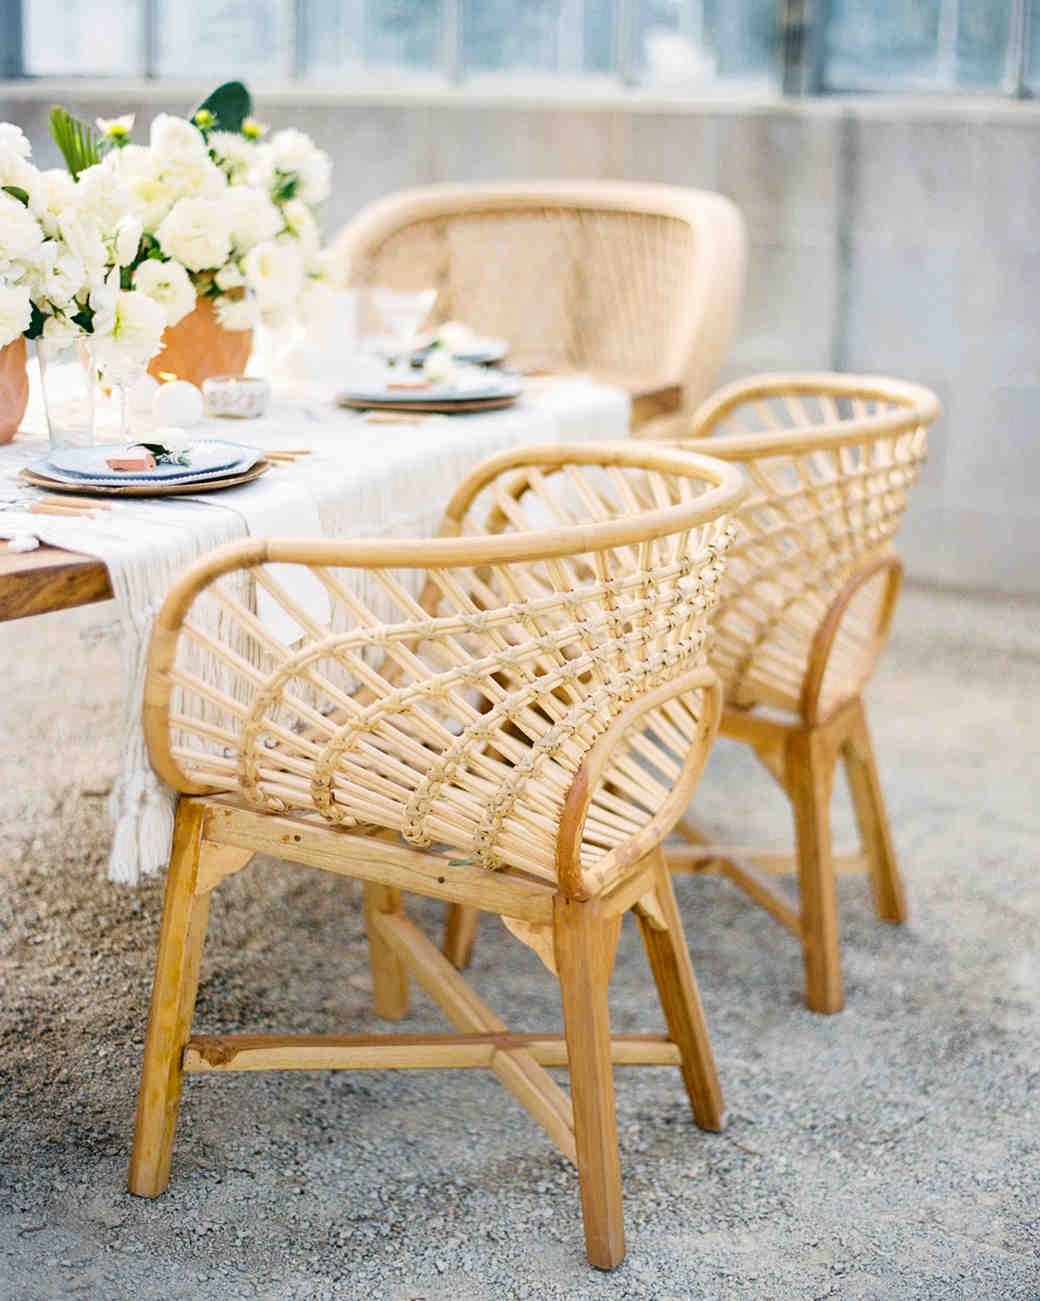 woven rattan wedding decor chairs around table decorated with white roses